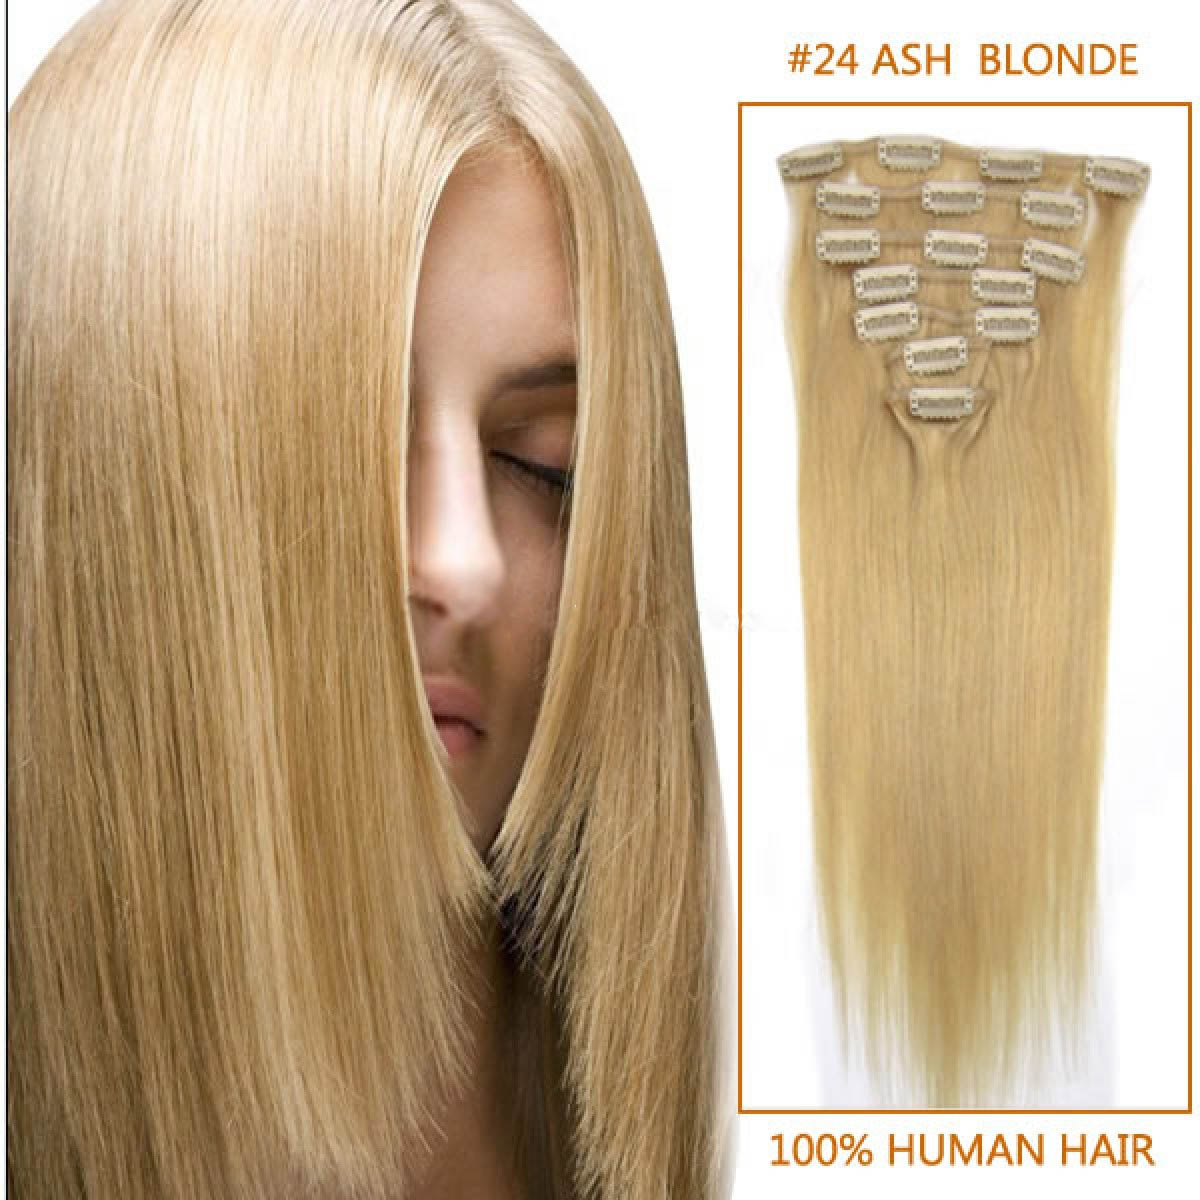 Inch 24 ash blonde clip in remy human hair extensions 9pcs 30 inch 24 ash blonde clip in remy human hair extensions 9pcs pmusecretfo Choice Image